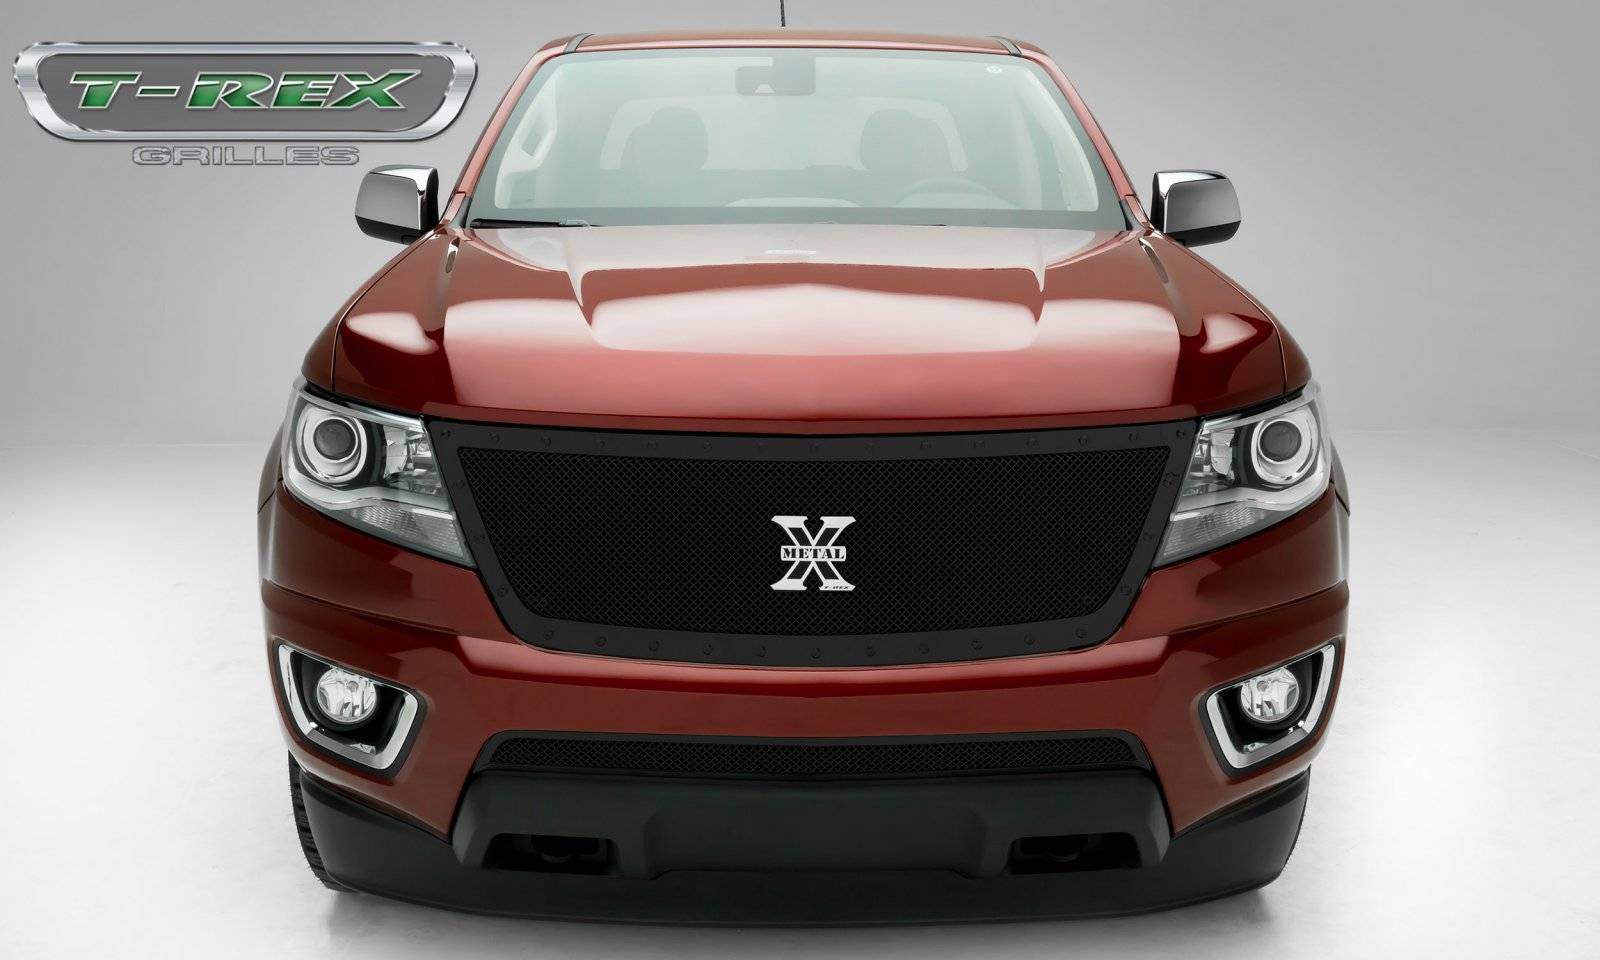 Chevrolet Colorado - X-Metal Series - Main Grille with Black Powdercoat Finish - Pt # 6712671